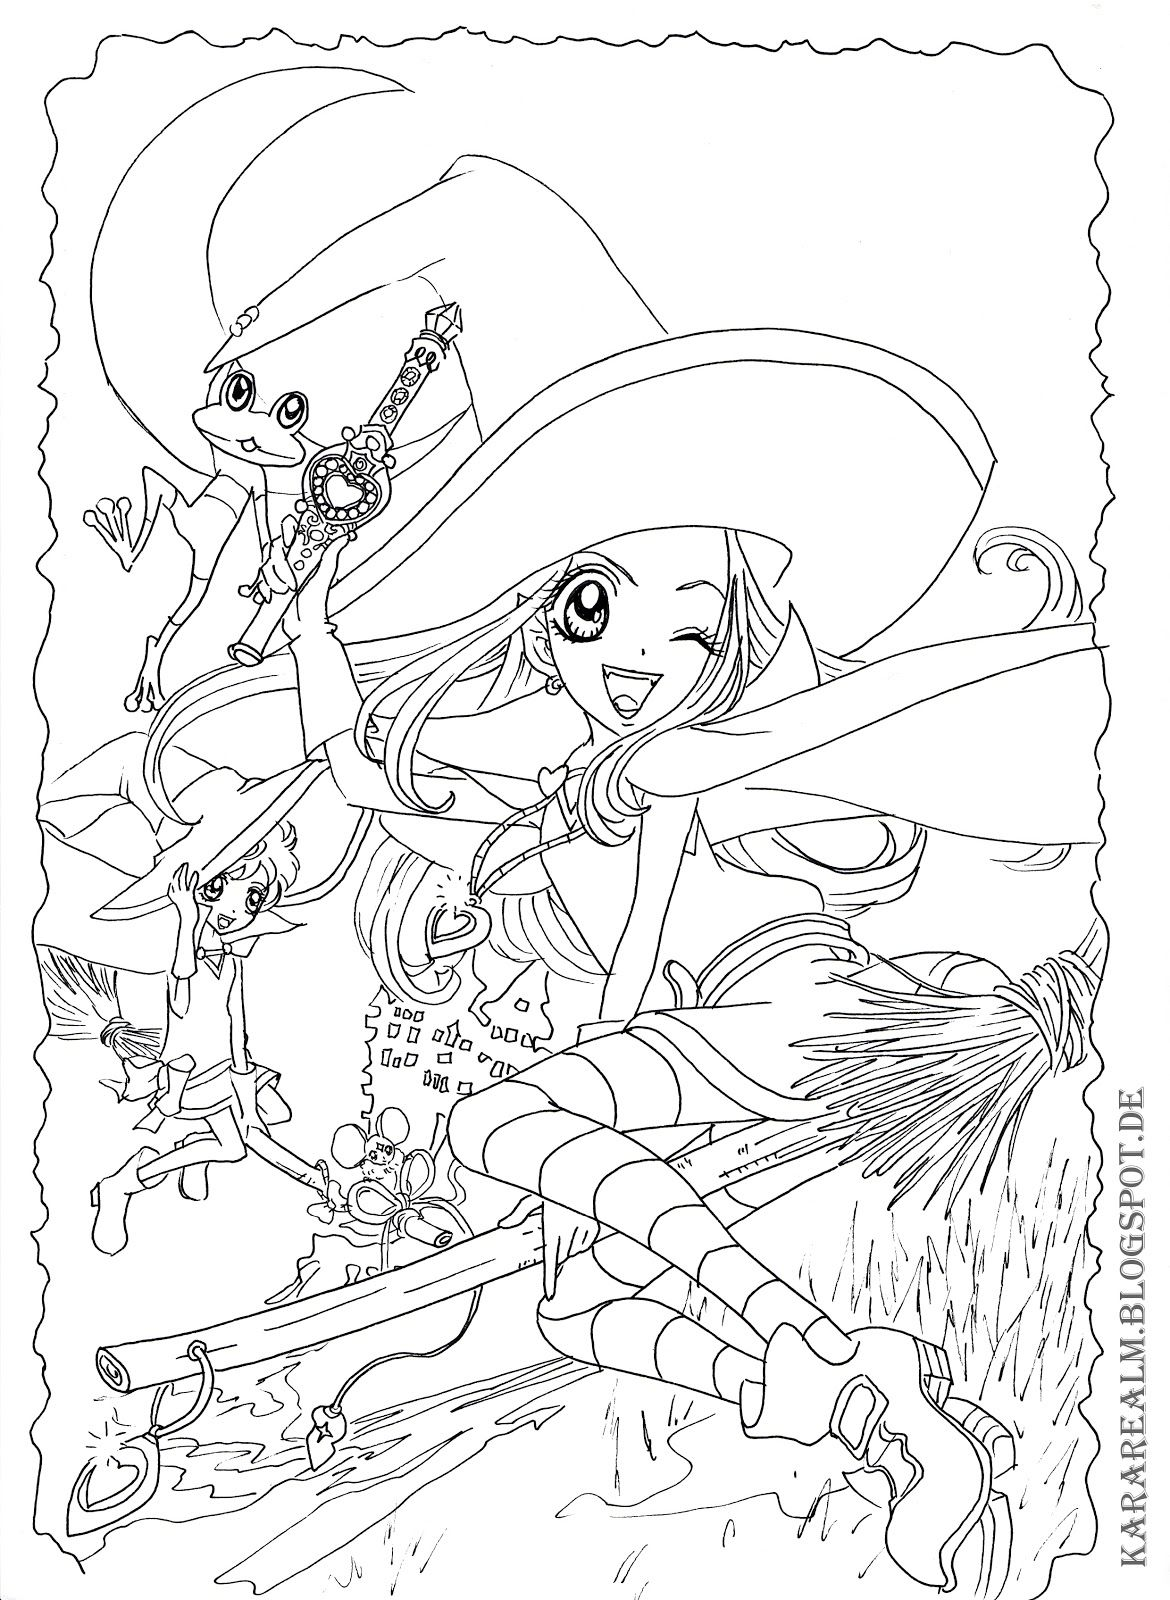 Sugar Sugar Rune Coloring Pages Google Search Anime